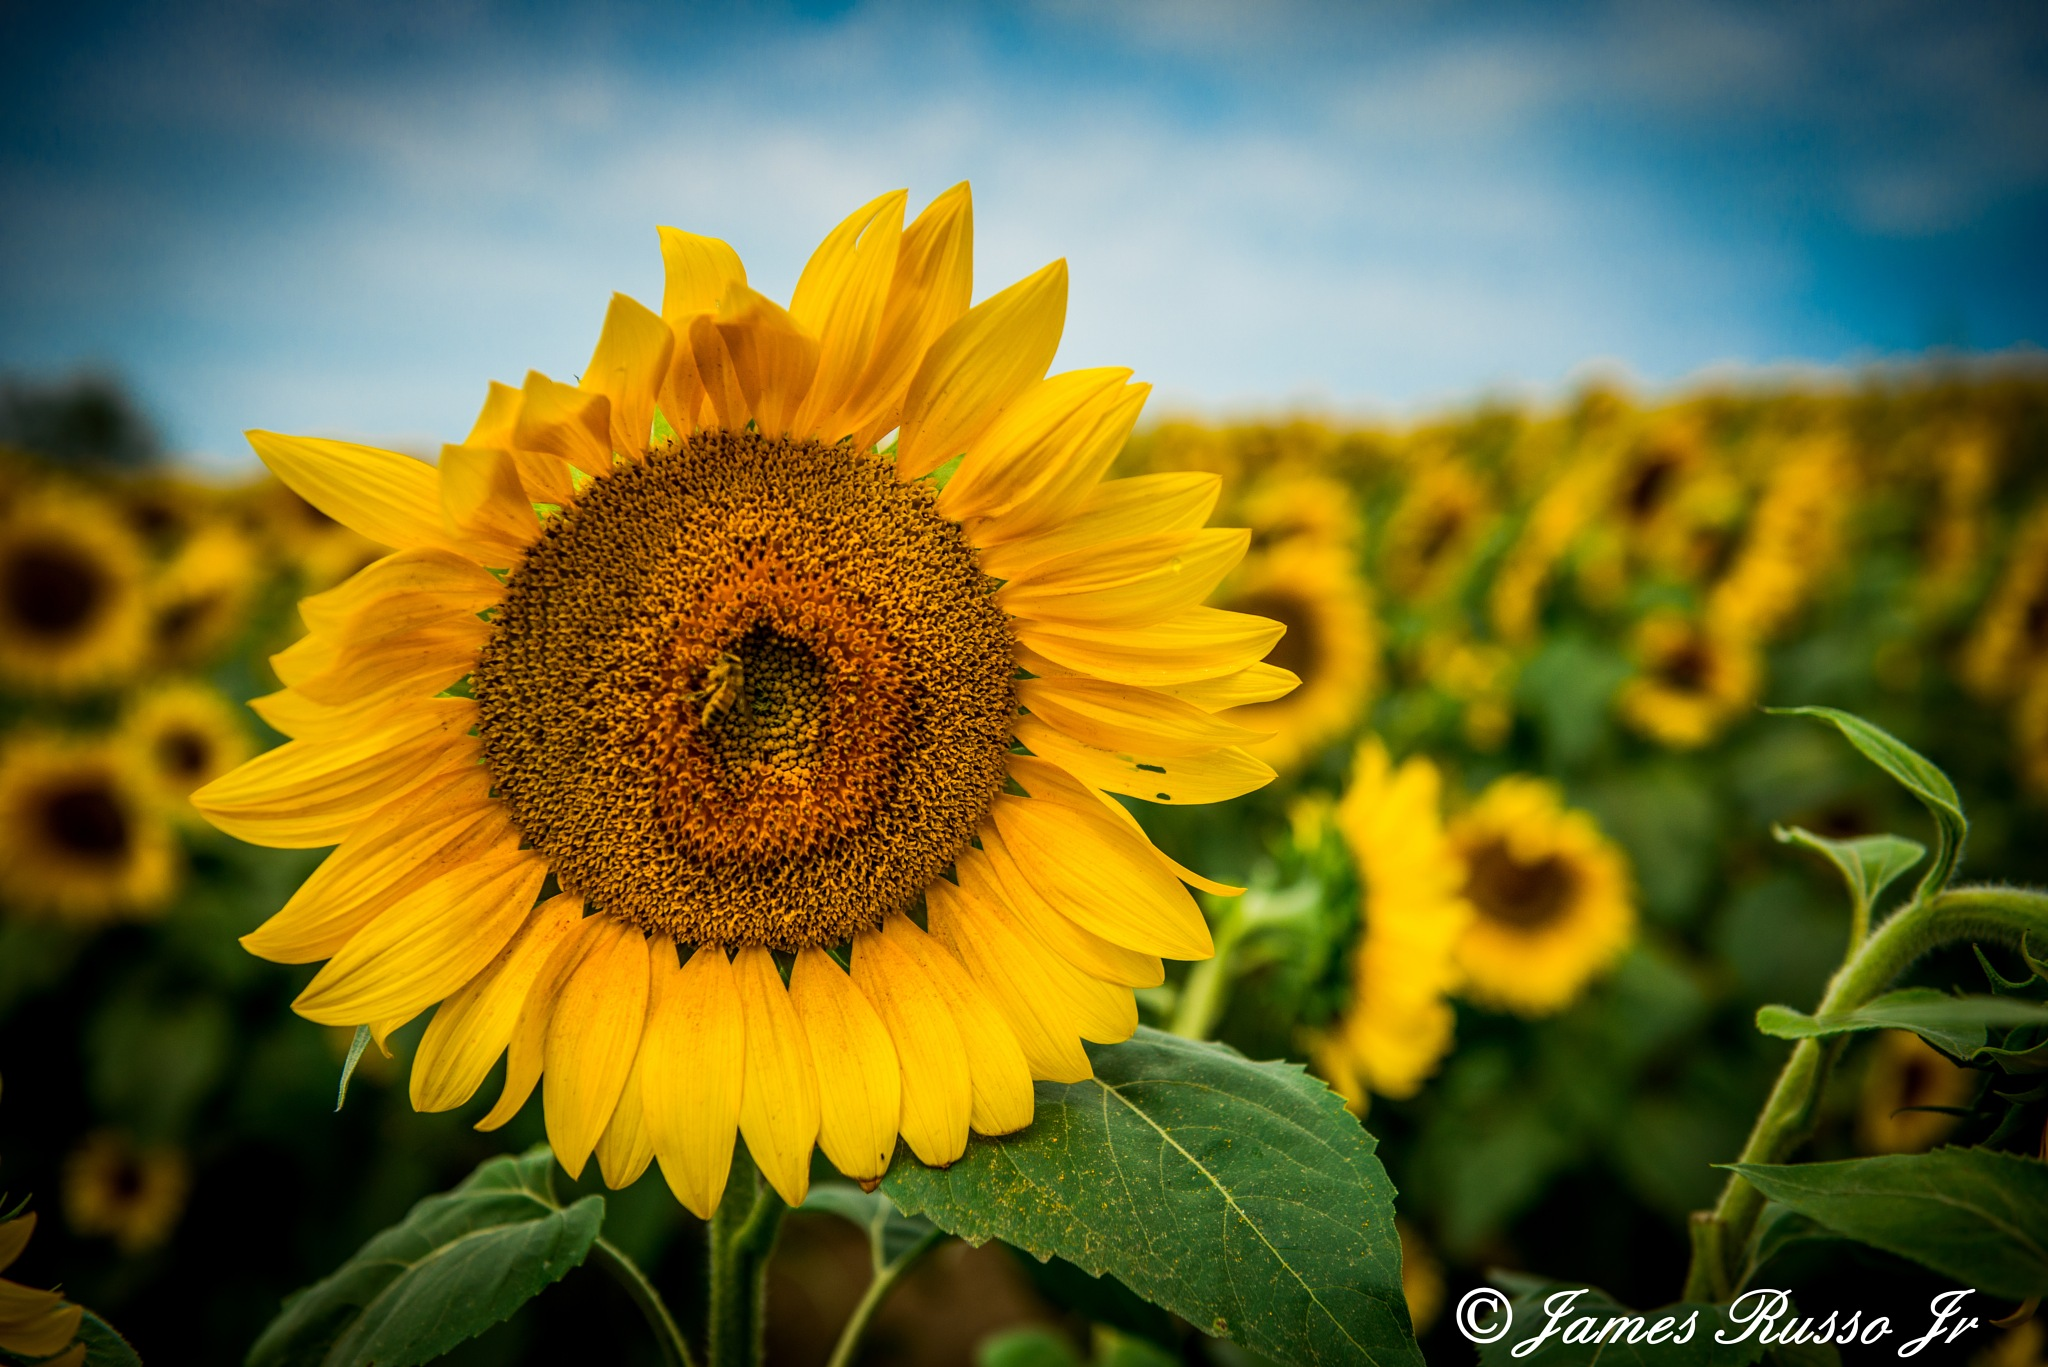 Flower Power by James Russo